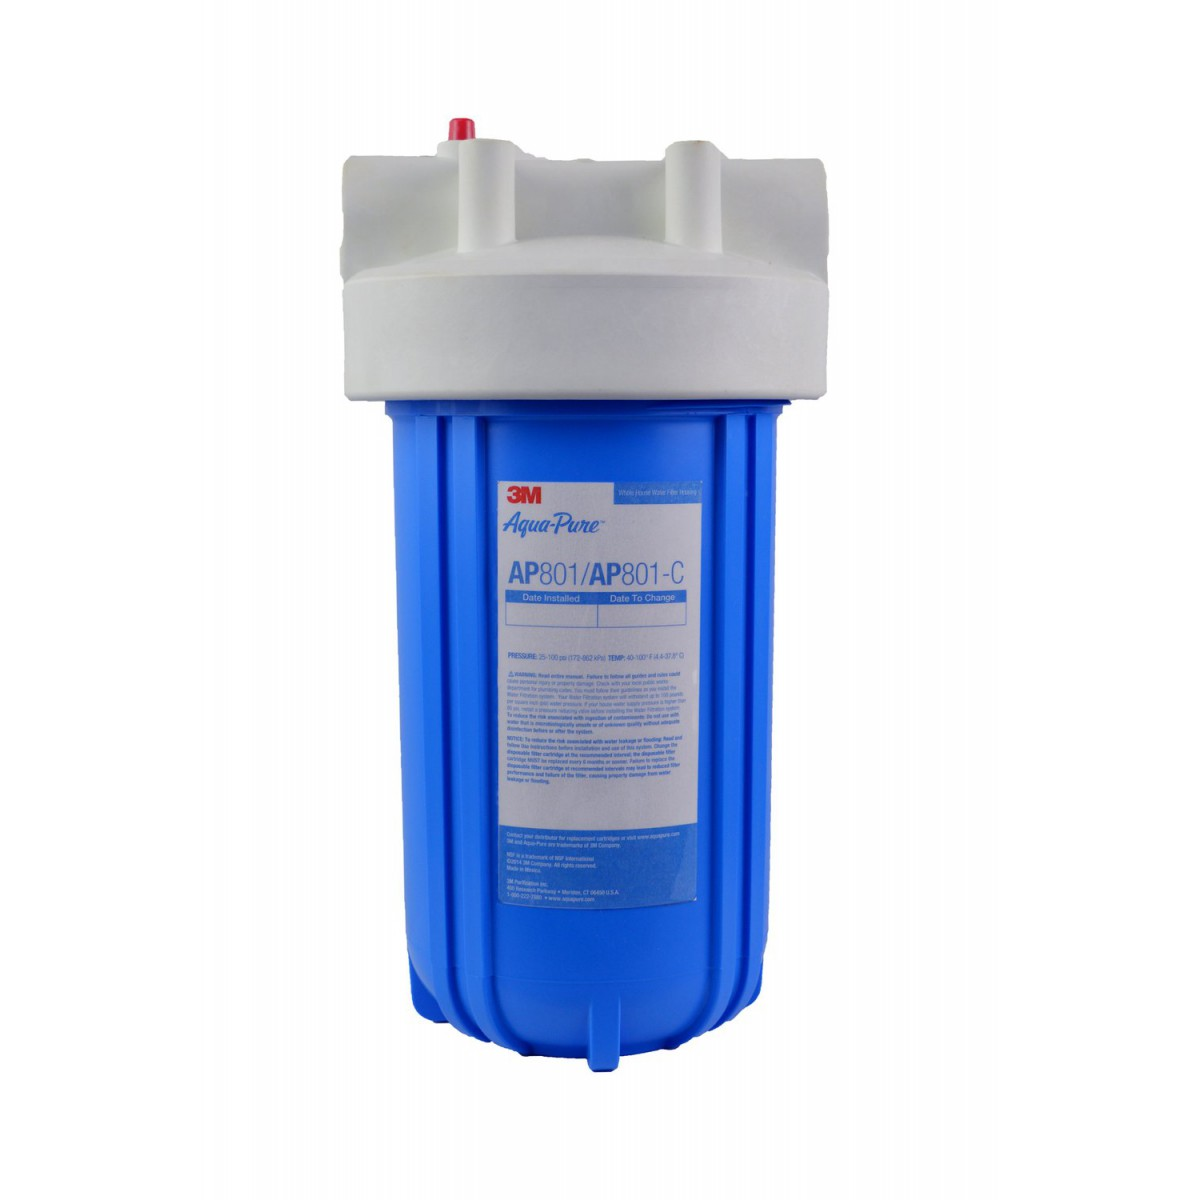 """pure water Pura ultraviolet systems pura ultraviolet units to rid water of bacteria many sizes—from an undersink add-on drinking water unit to the """"big boy"""" series, capable of handling industrial applications ultraviolet keeps the chemicals out of your well water and out of the environment."""